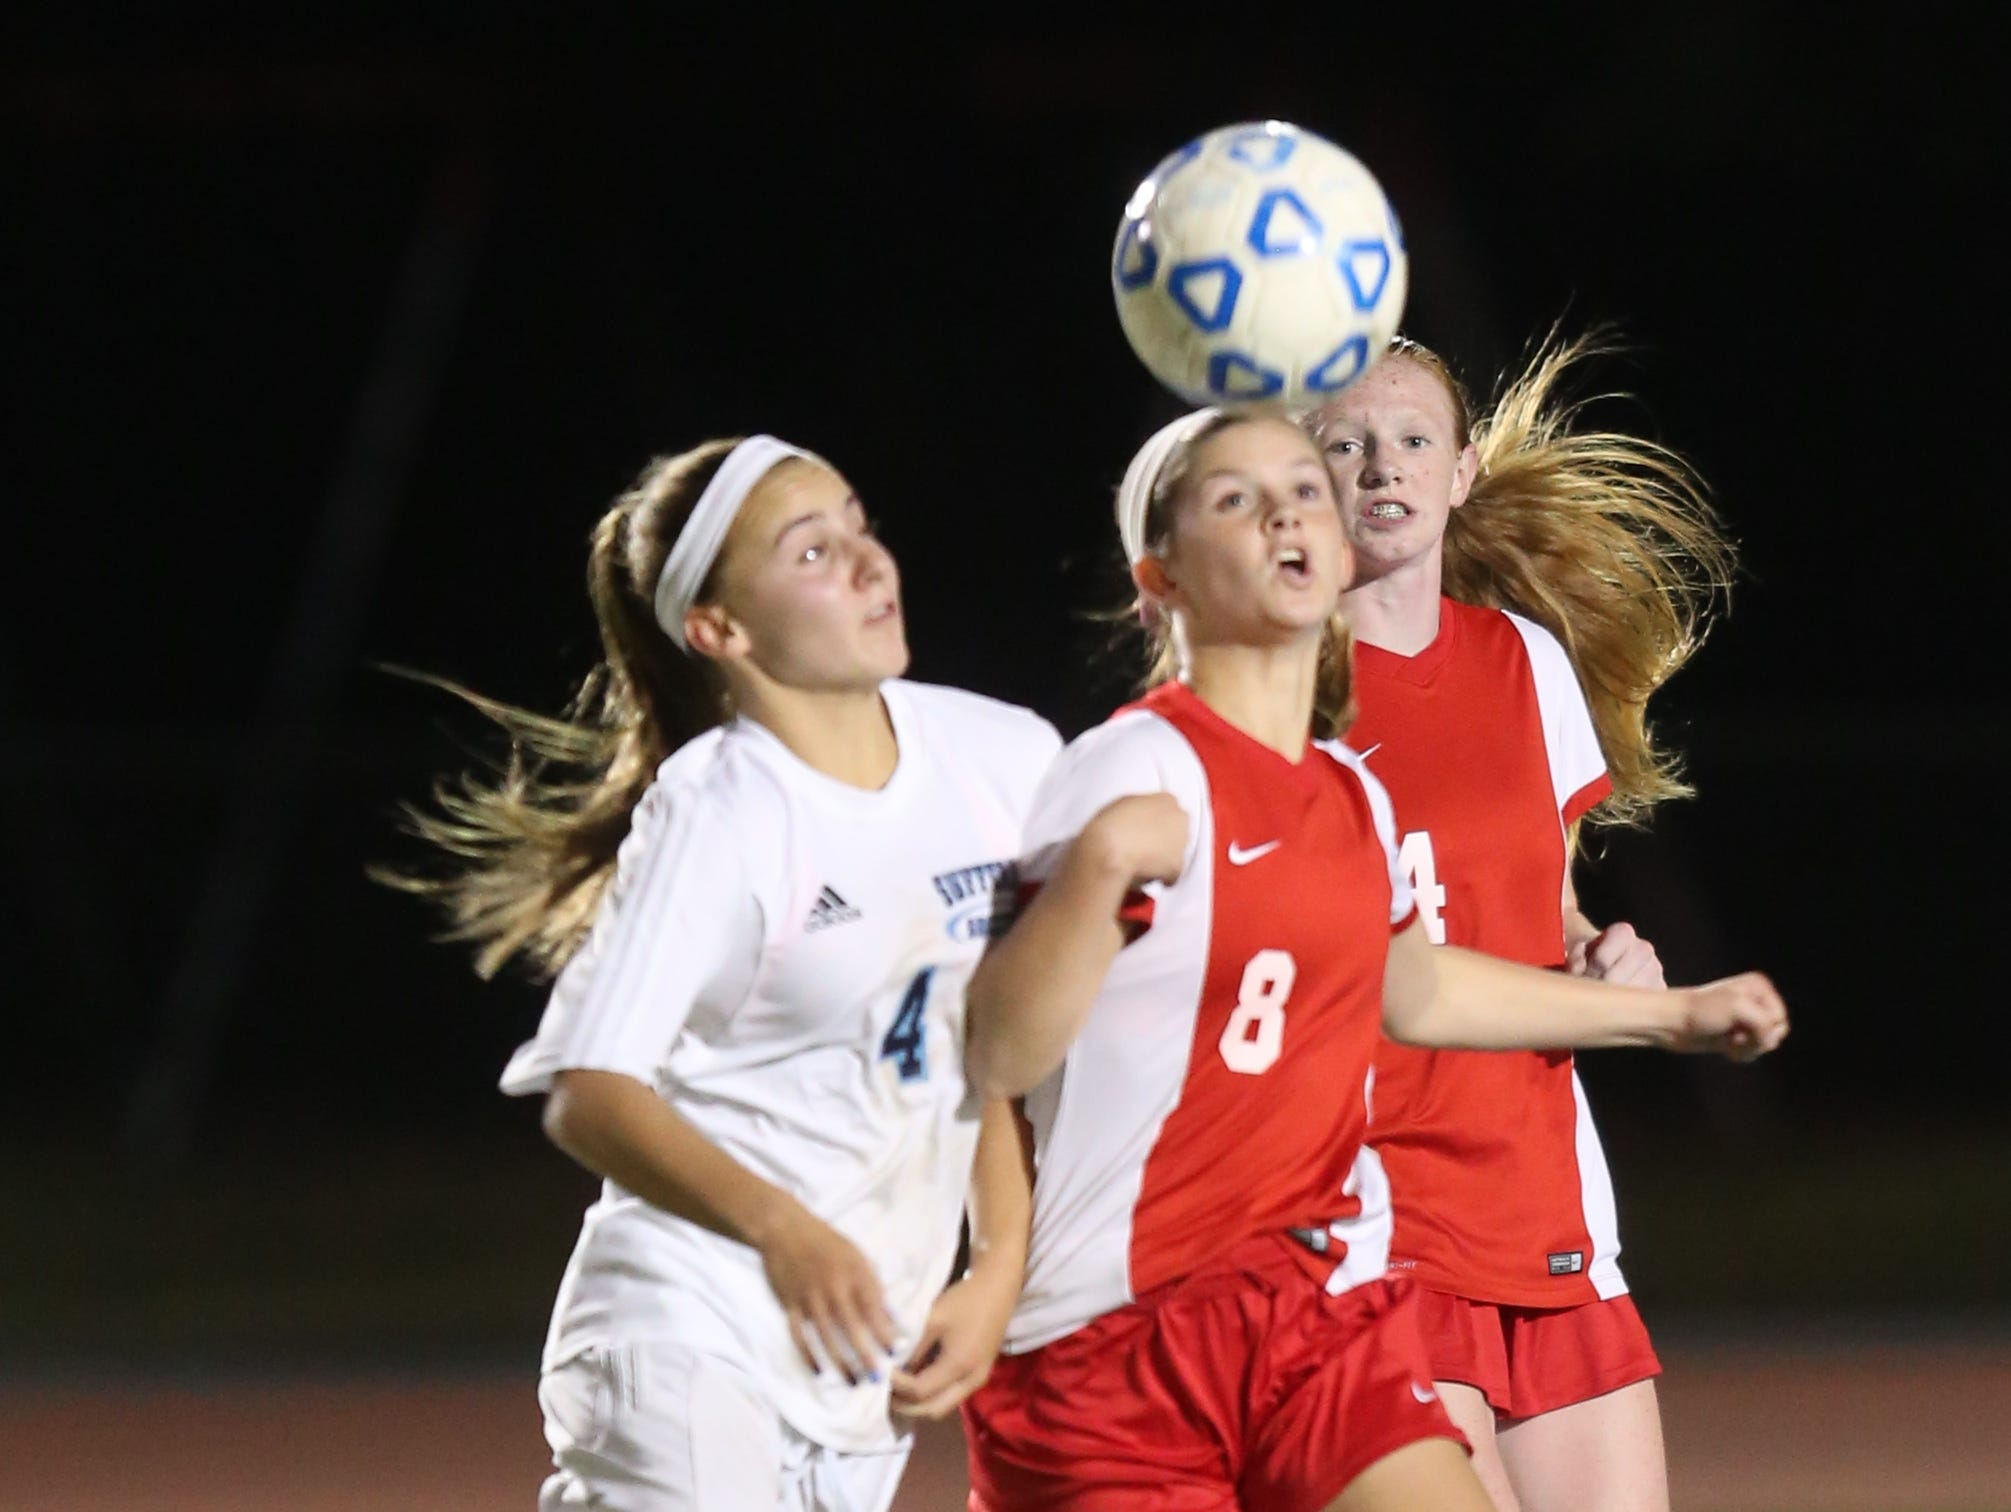 North Rockland plays Suffern in girls soccer at Suffern Middle School on Oct. 5, 2016.